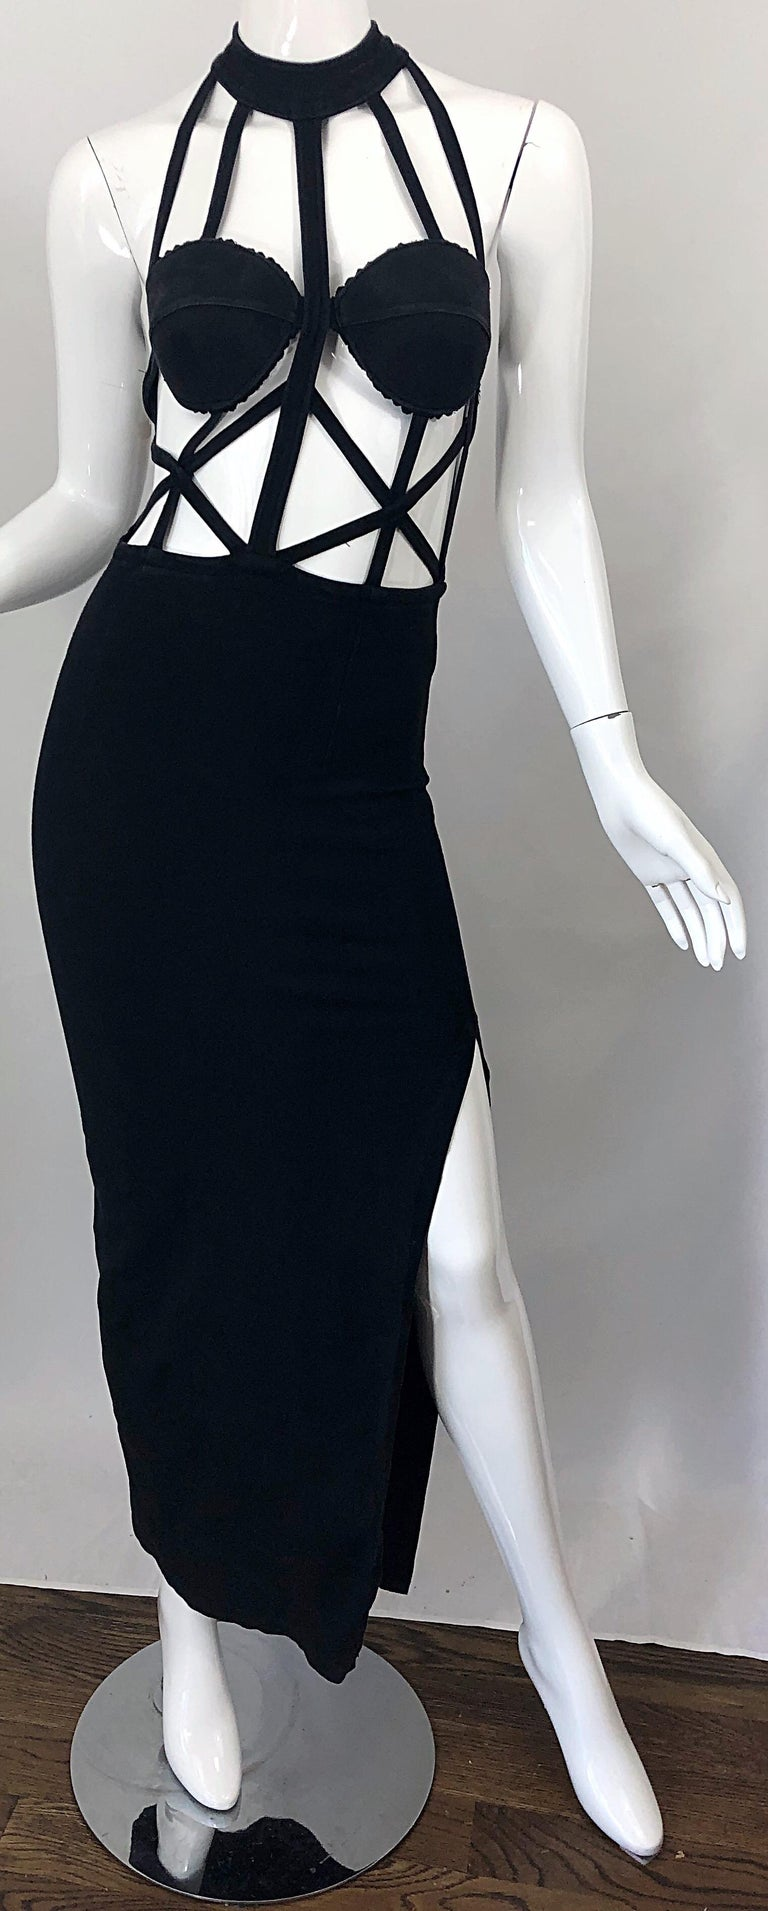 1990s Black Caged Bodycon Sexy Cotton Vintage Early 90s Cut - Out Gown Dress For Sale 4